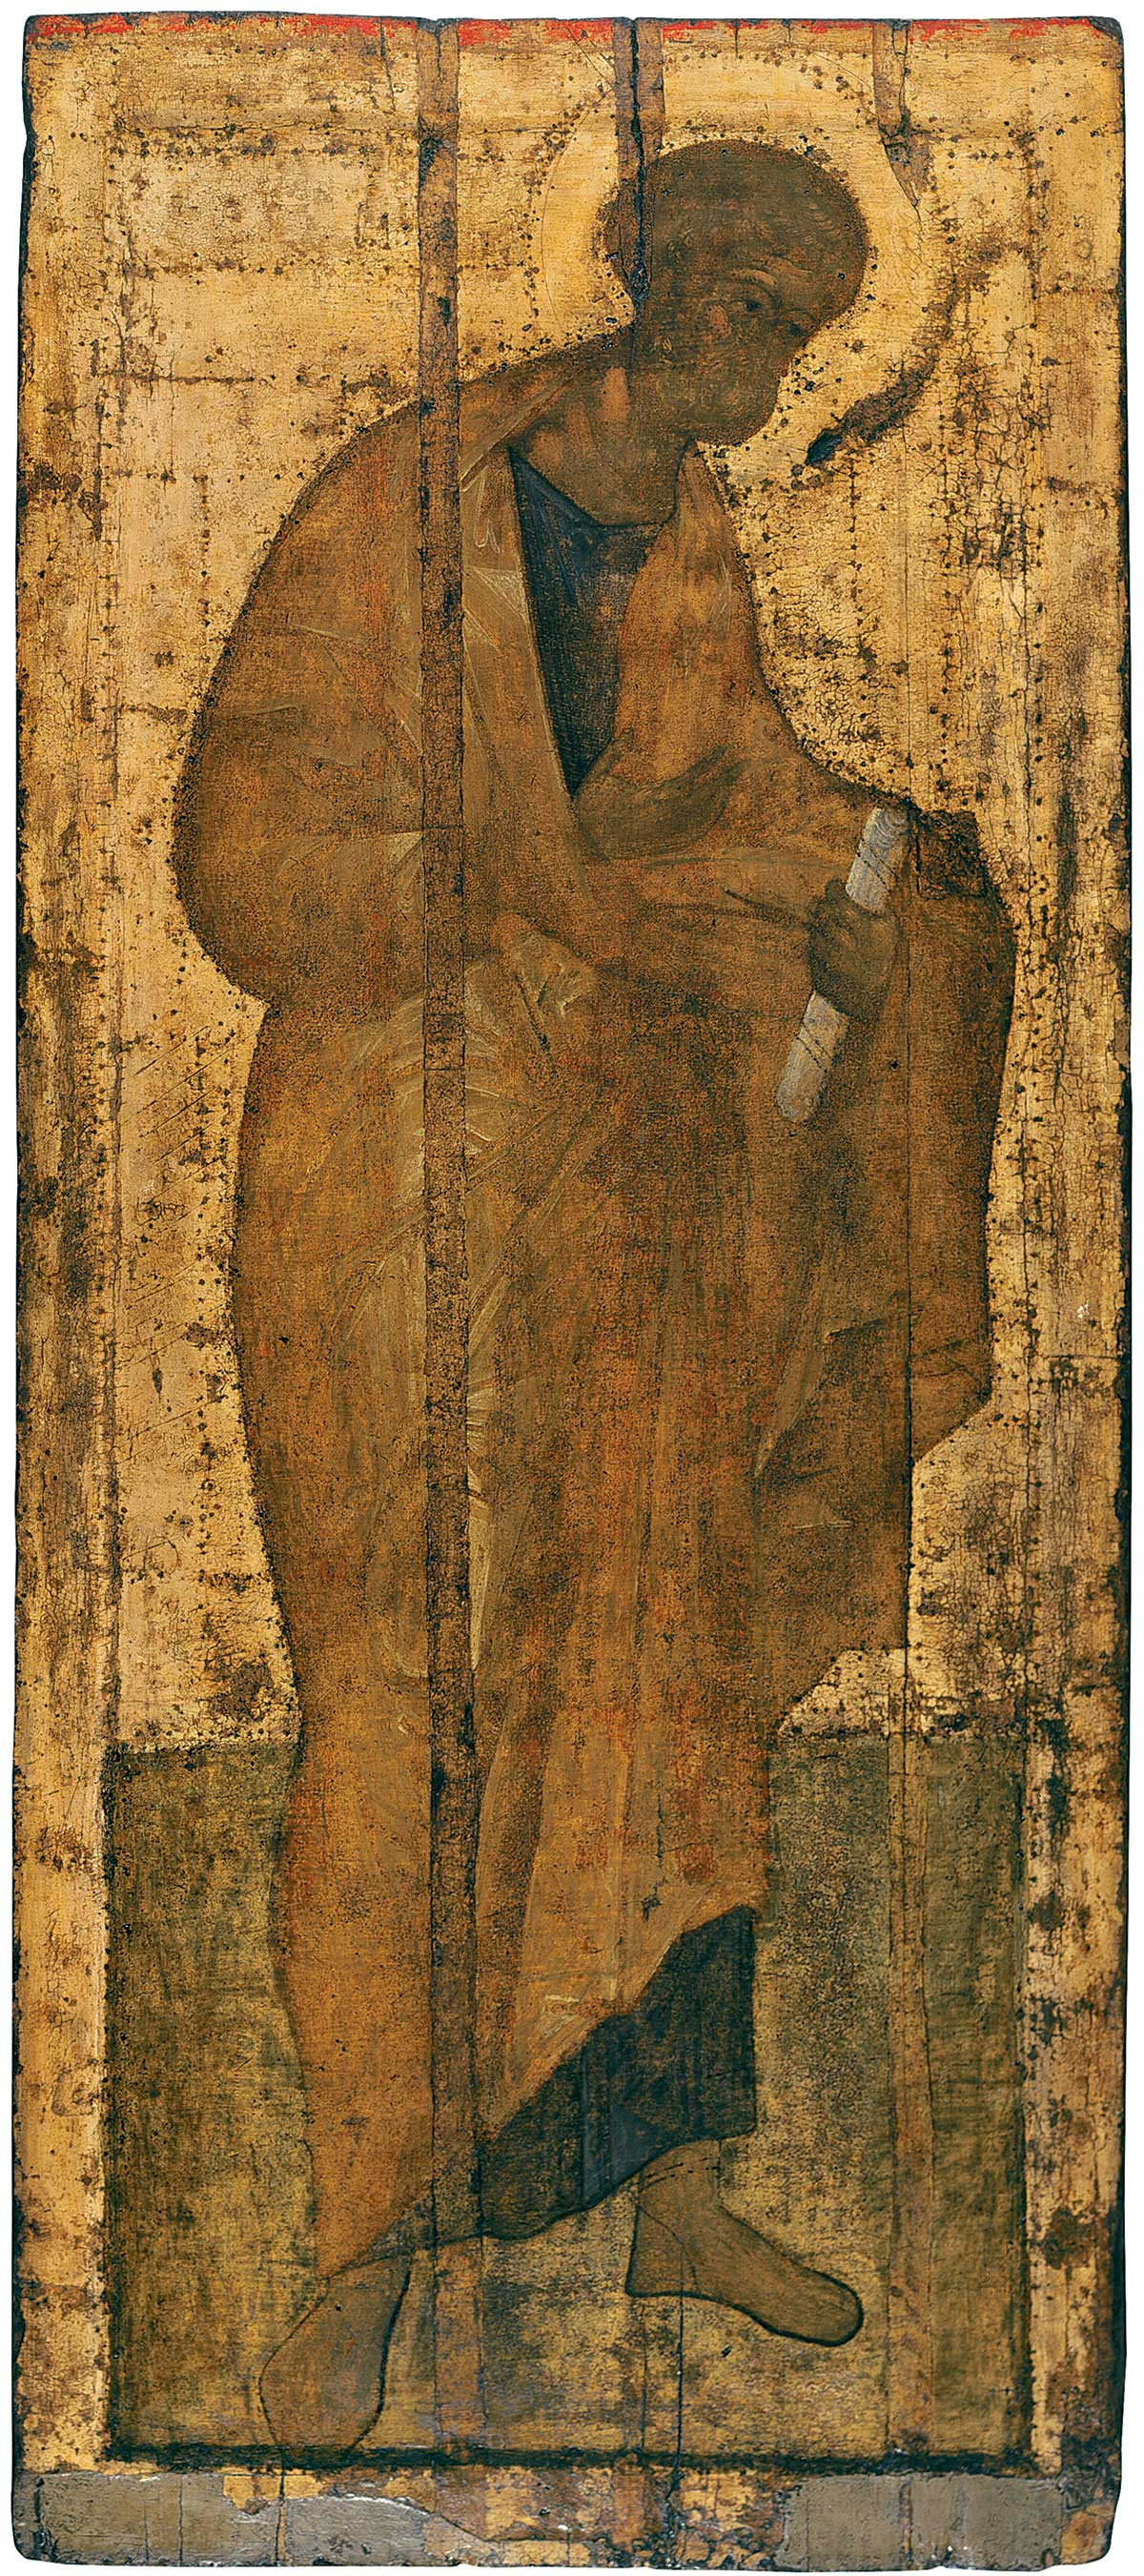 Andrey Rublev. The Apostle Peter